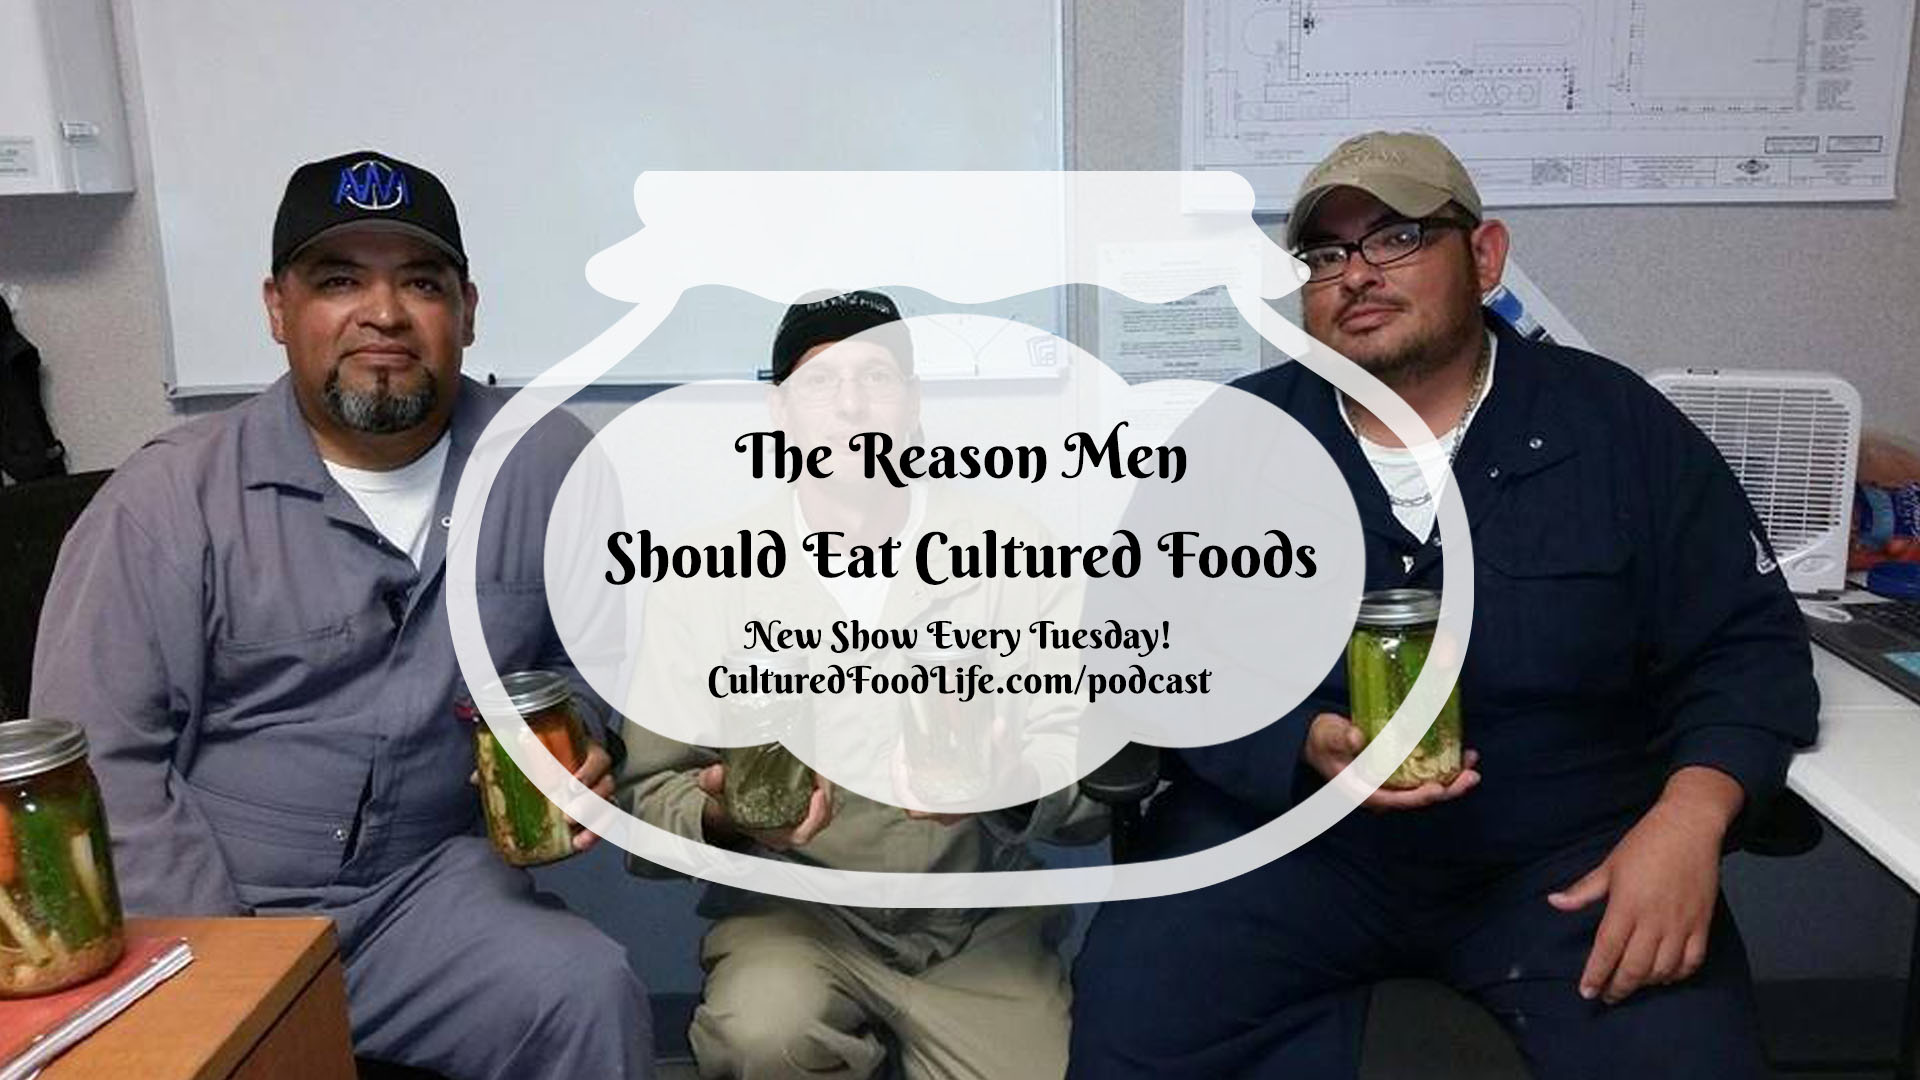 The Reason Men Should Eat Cultured Foods Full